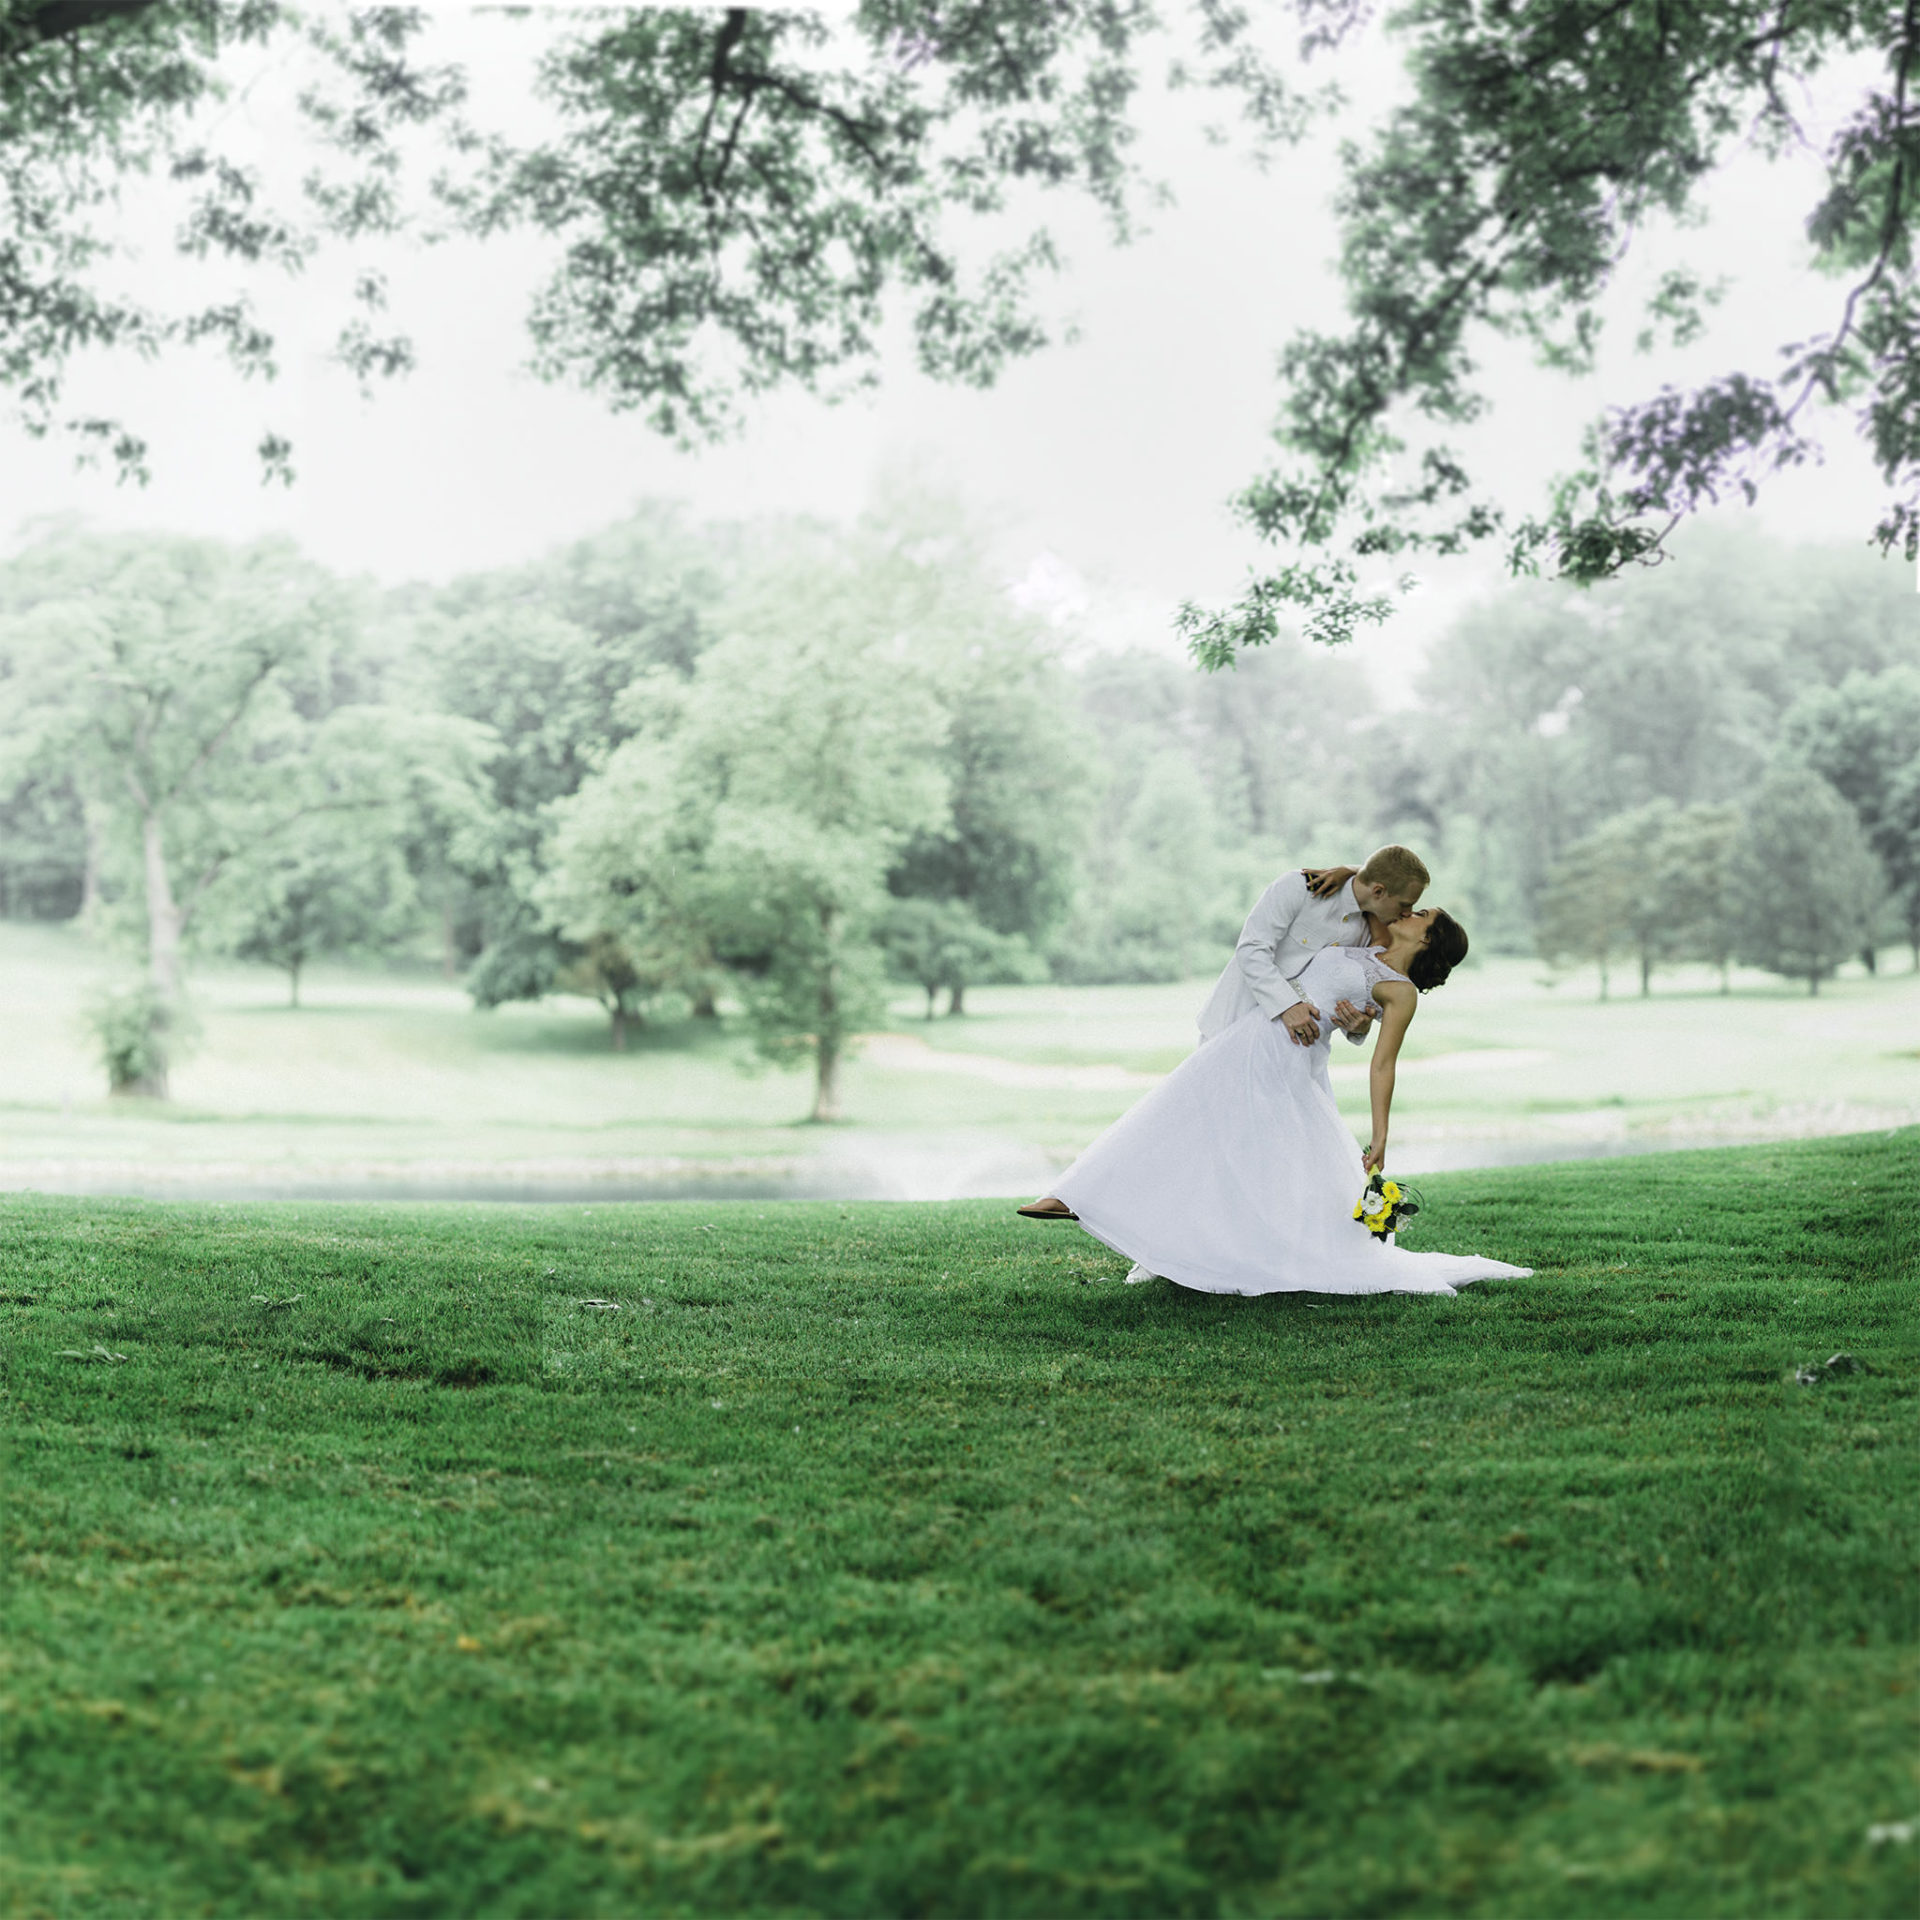 Couple Kissing on Golf Course